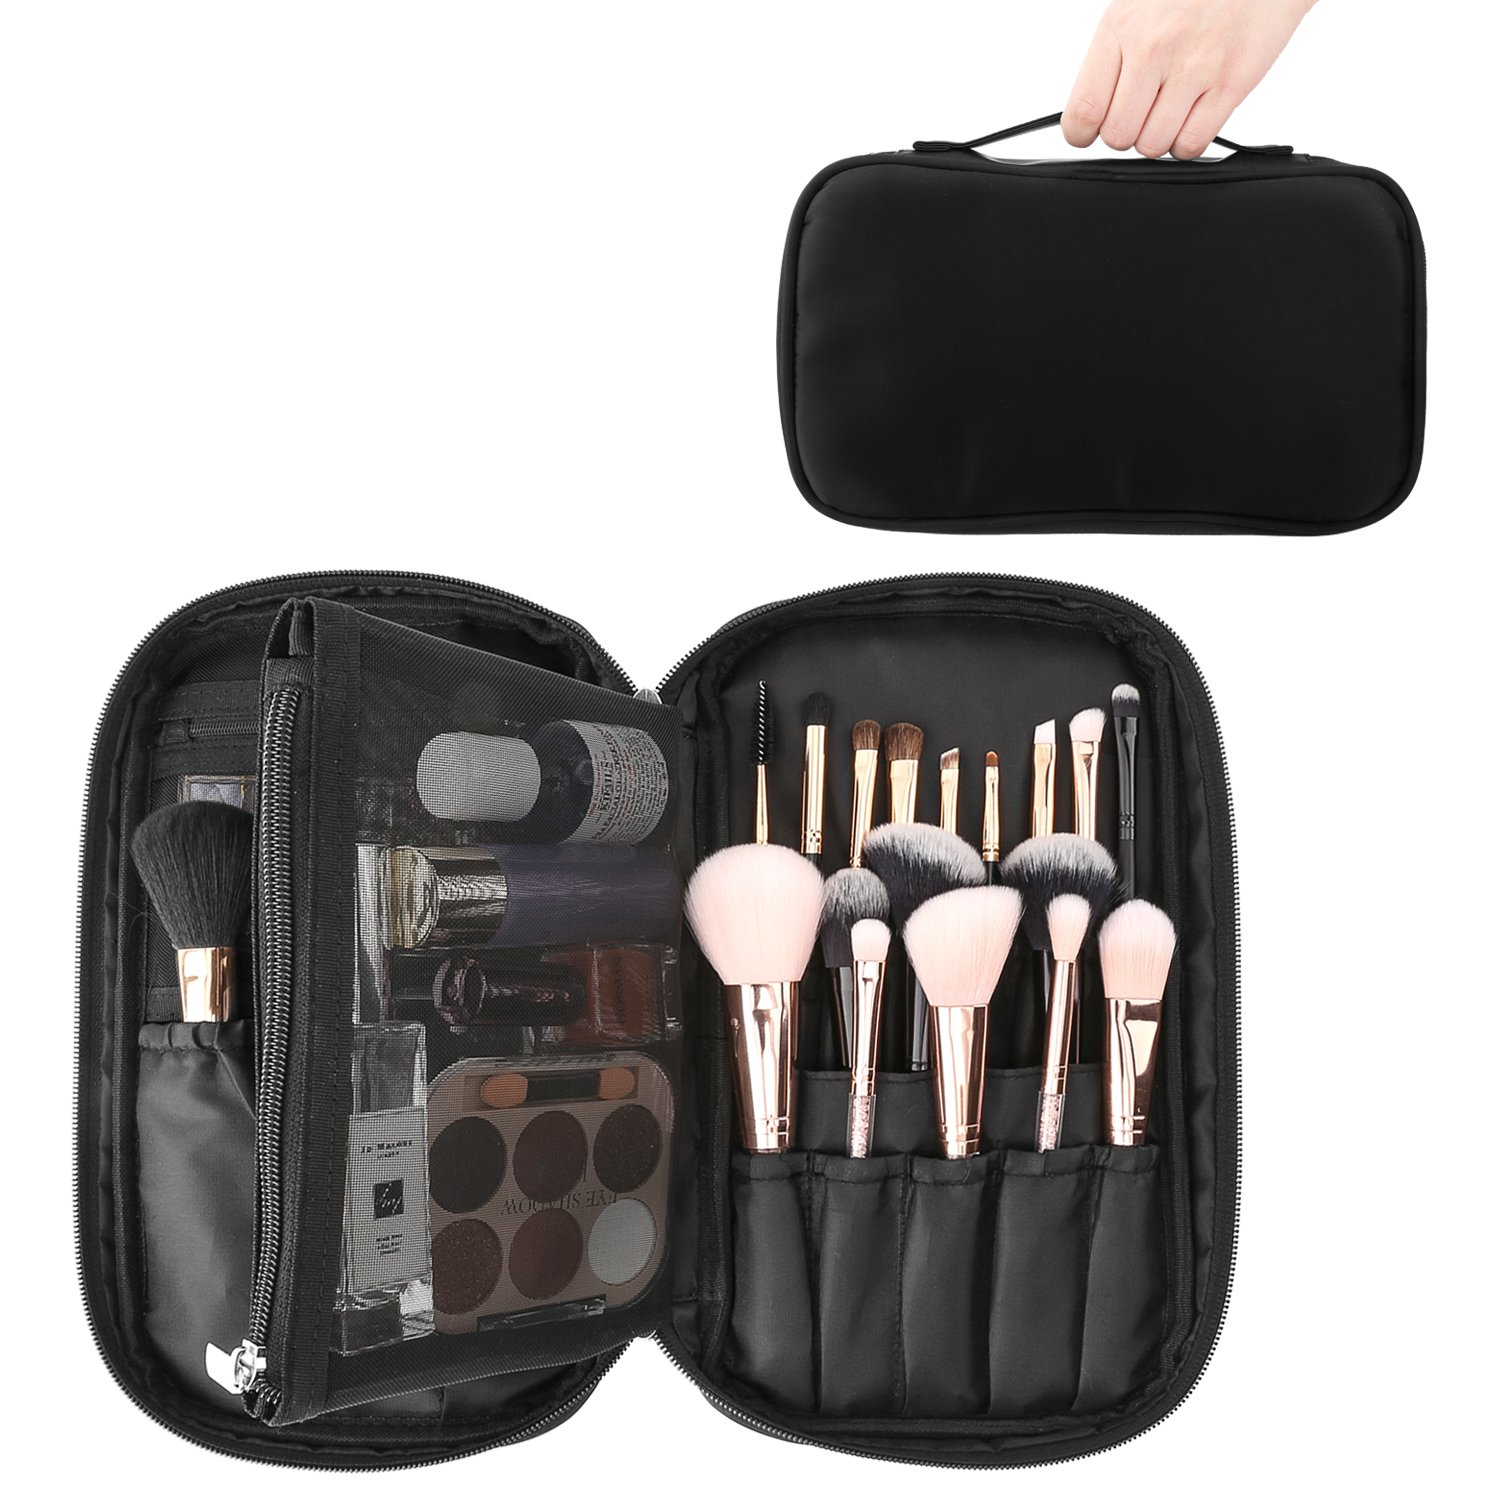 Luxspire Cosmetic Case Makeup Brush Organizer, Professional Cosmetic Bag Storage Case Box Make up Handbag Train Case Travel Storage Bag Toiletry Organizer Tool with Belt Strap, Black